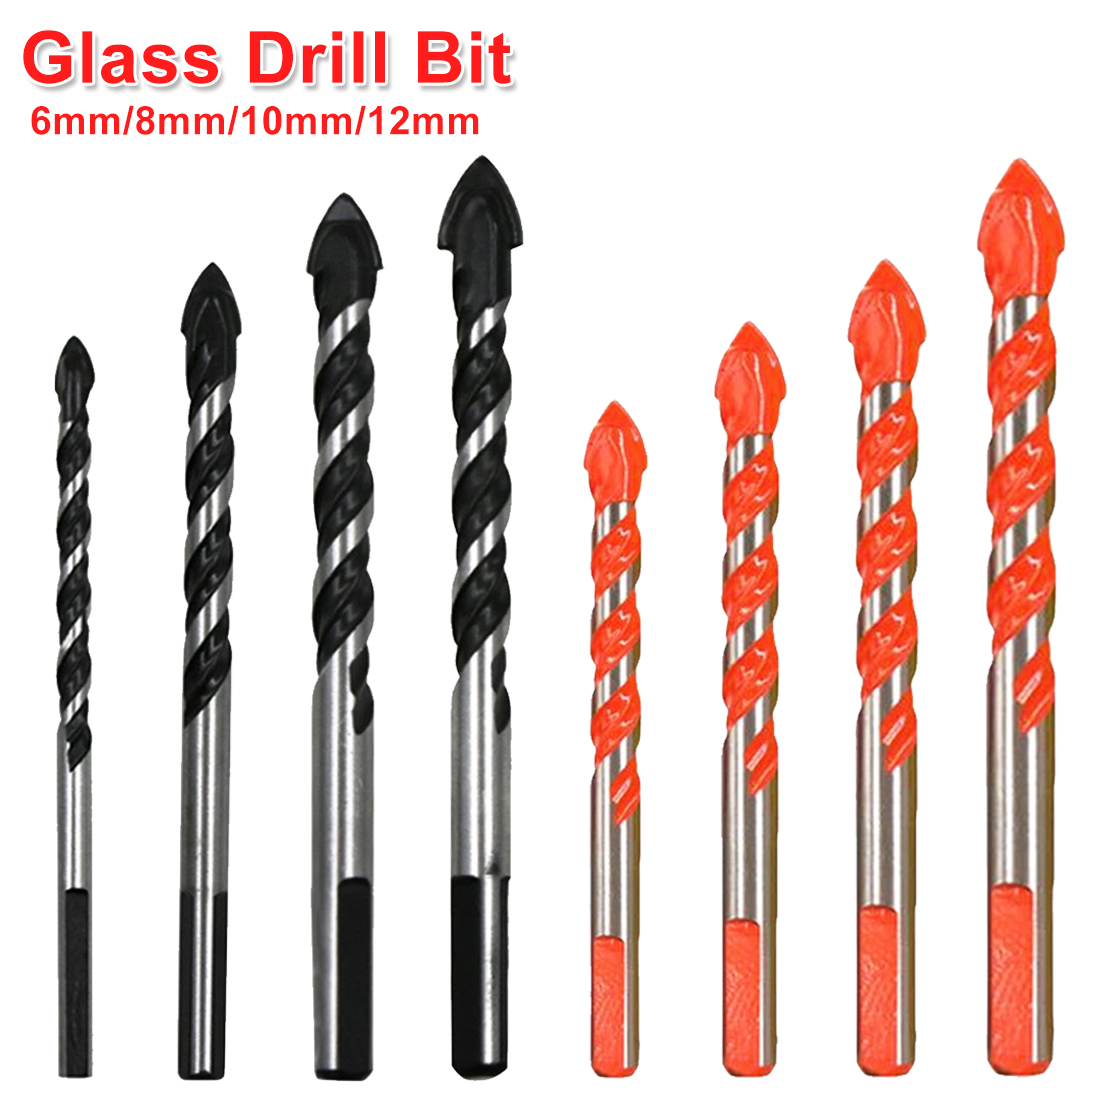 1Pc Triangle Shank Drill Multifunctional Ceramic Glass Hole Wall Cobalt Twist Spiral Bit Tile Concrete Drill Bit Tool